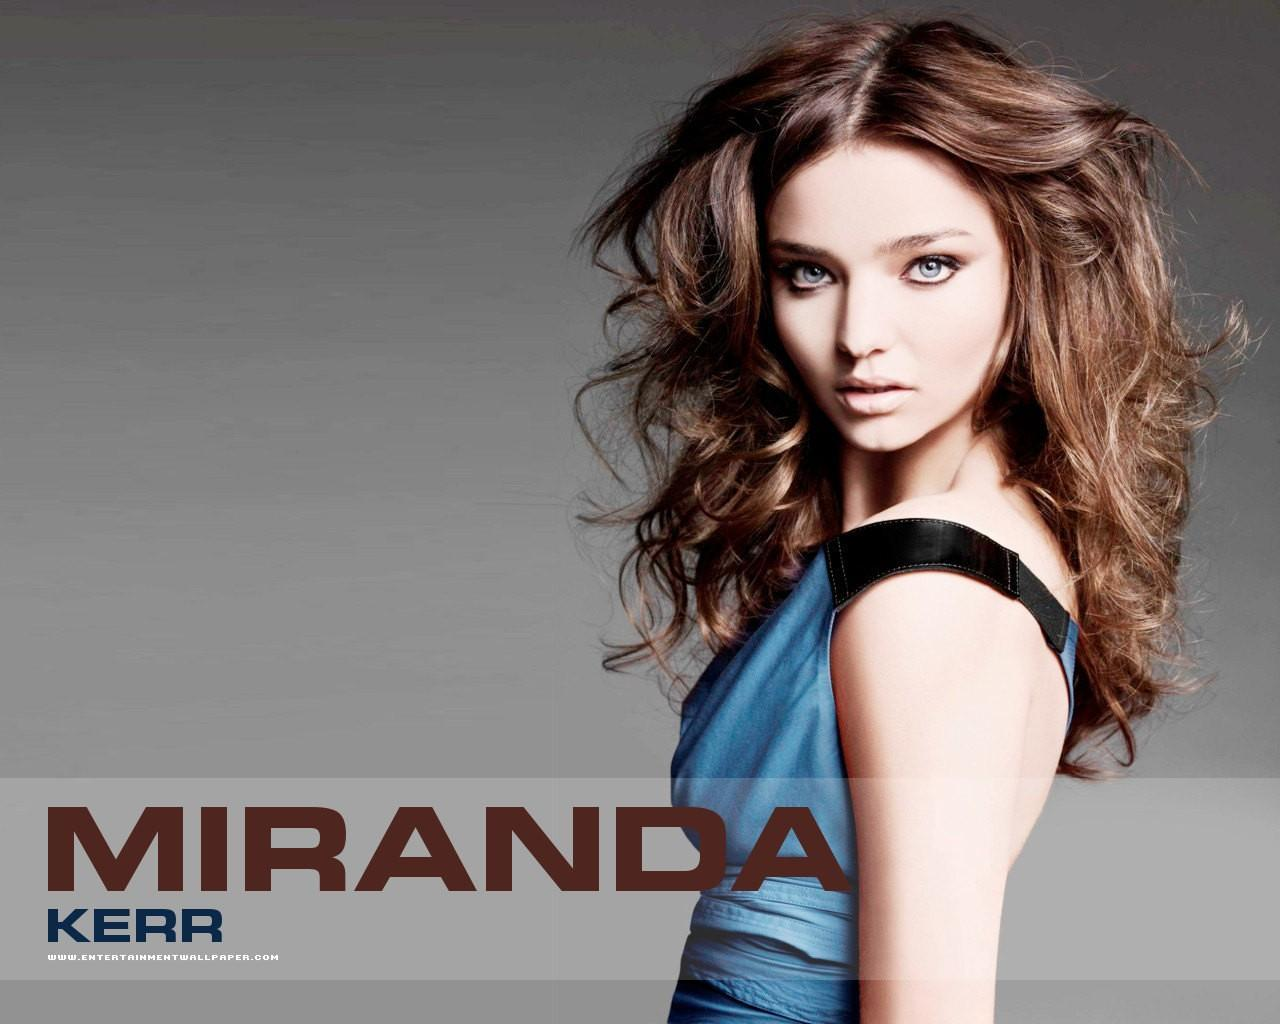 Wallpaper miranda kerr wallpaper miranda kerr wallpaper miranda kerr